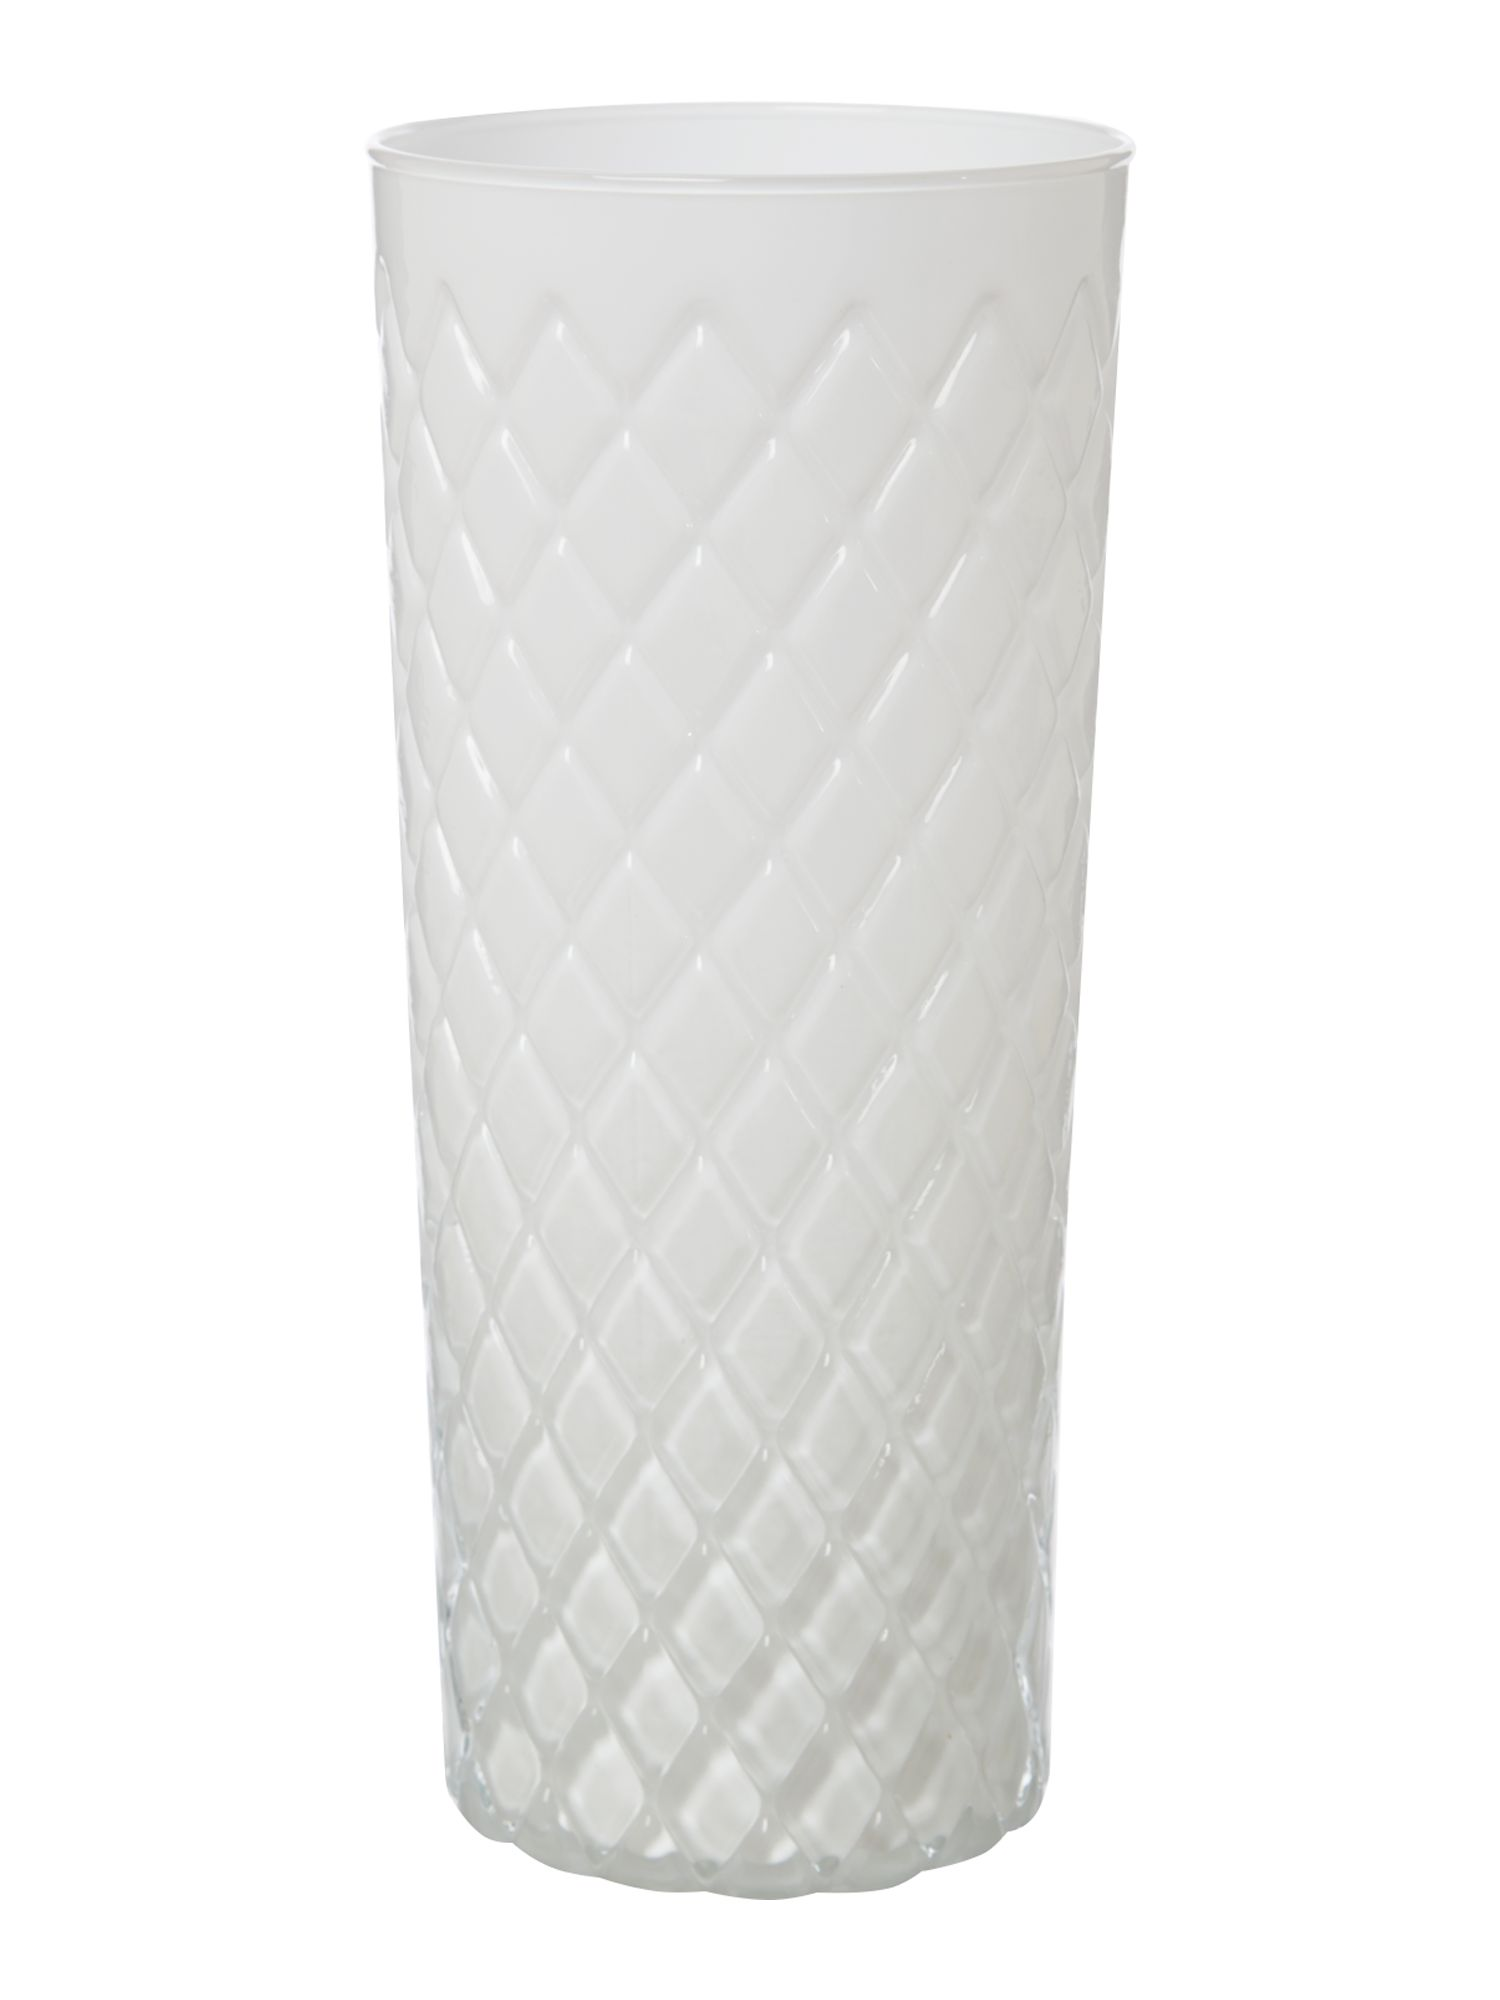 White diamond cut vase, large